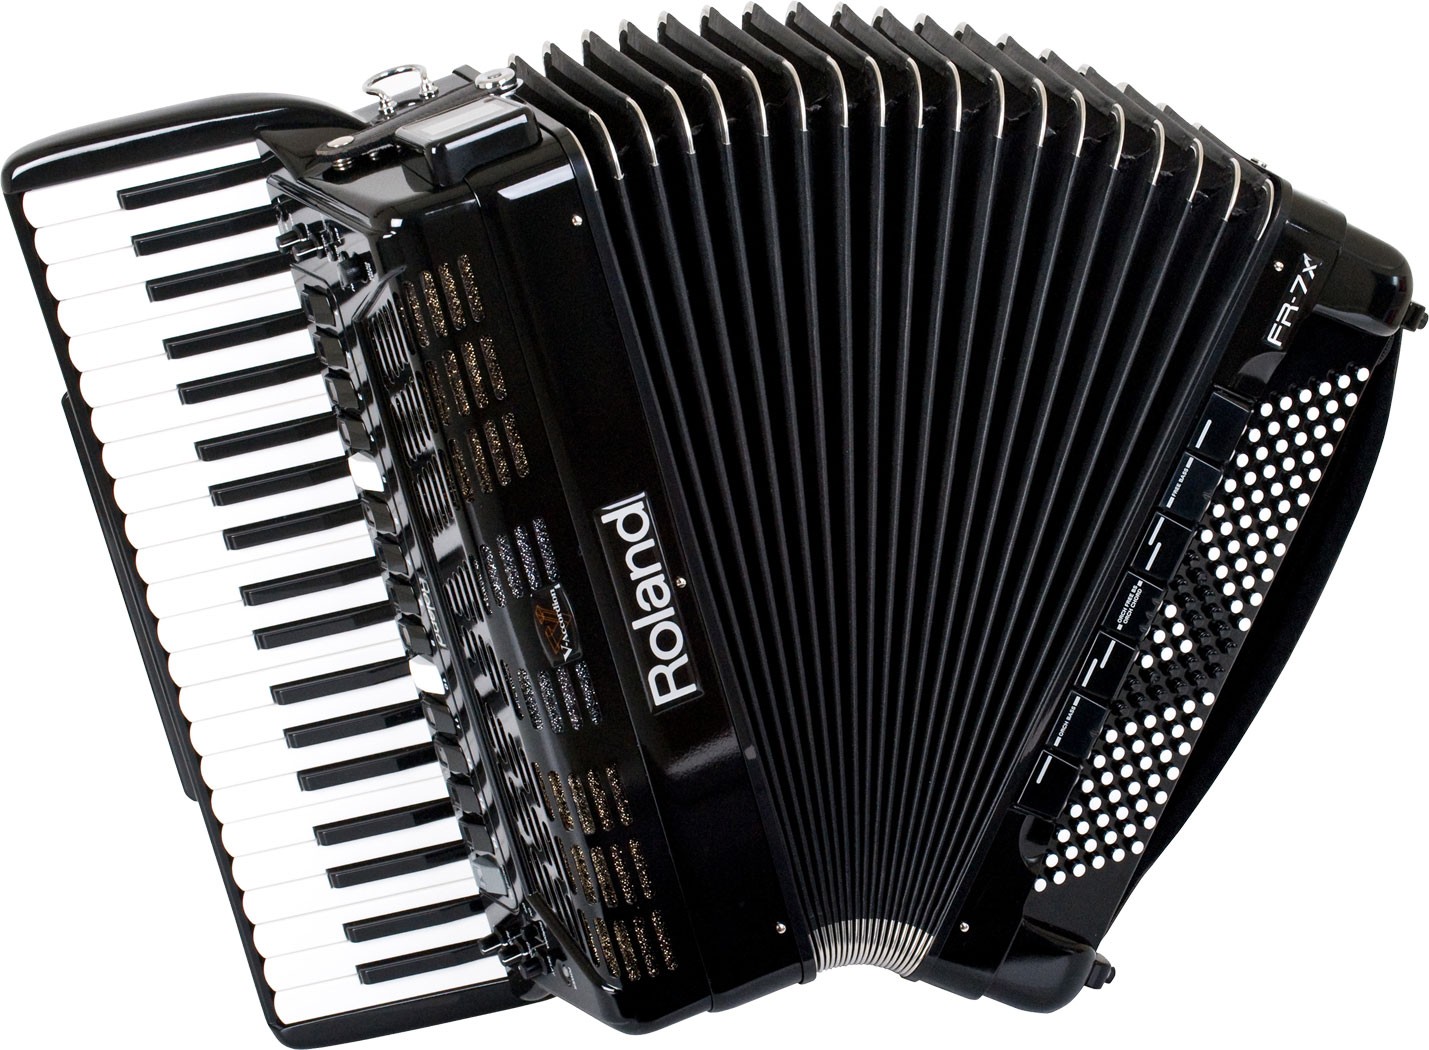 Accordion White Background Image - Accordion, Transparent background PNG HD thumbnail